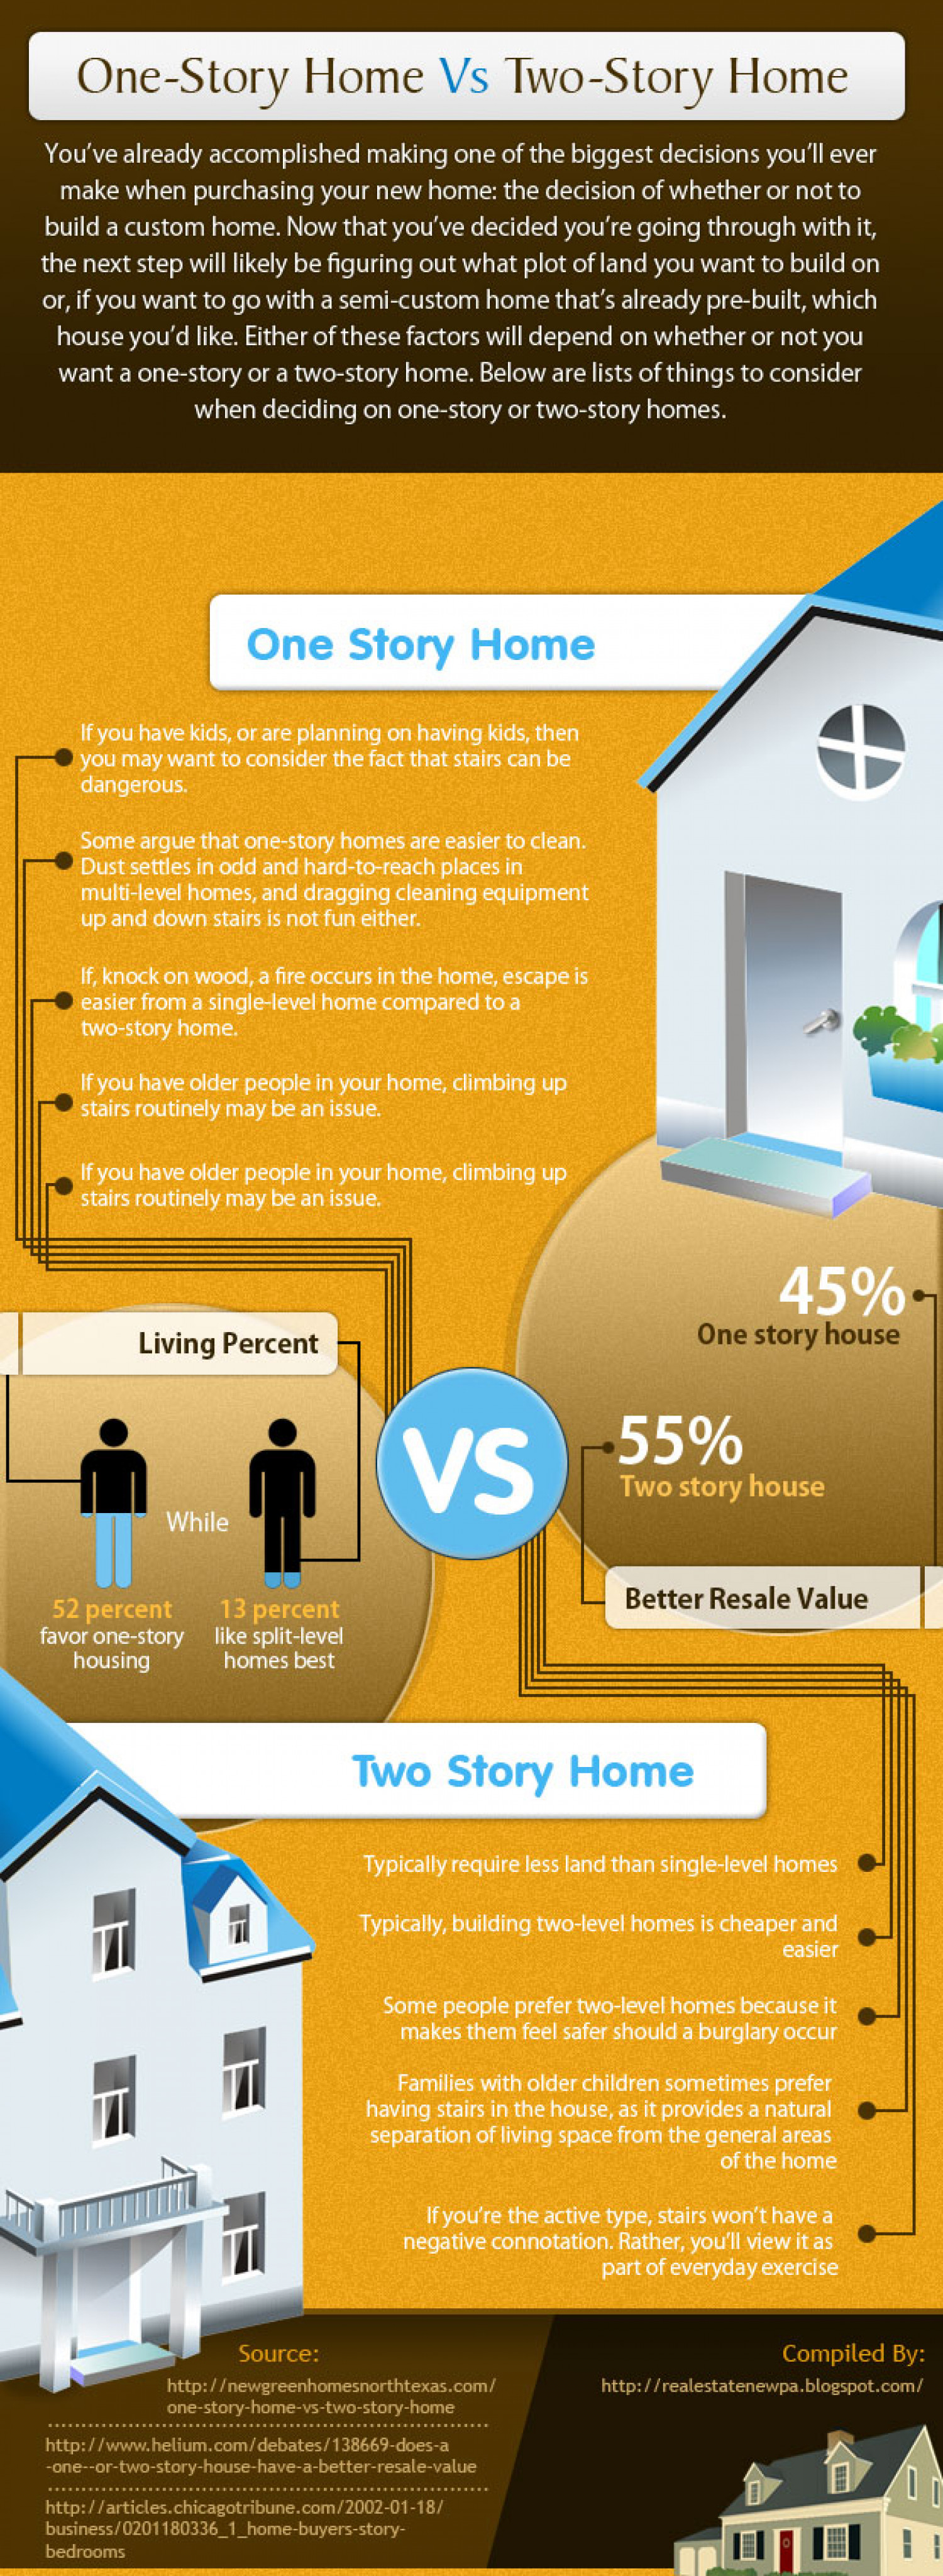 One-Story Home Vs Two-Story Home Infographic